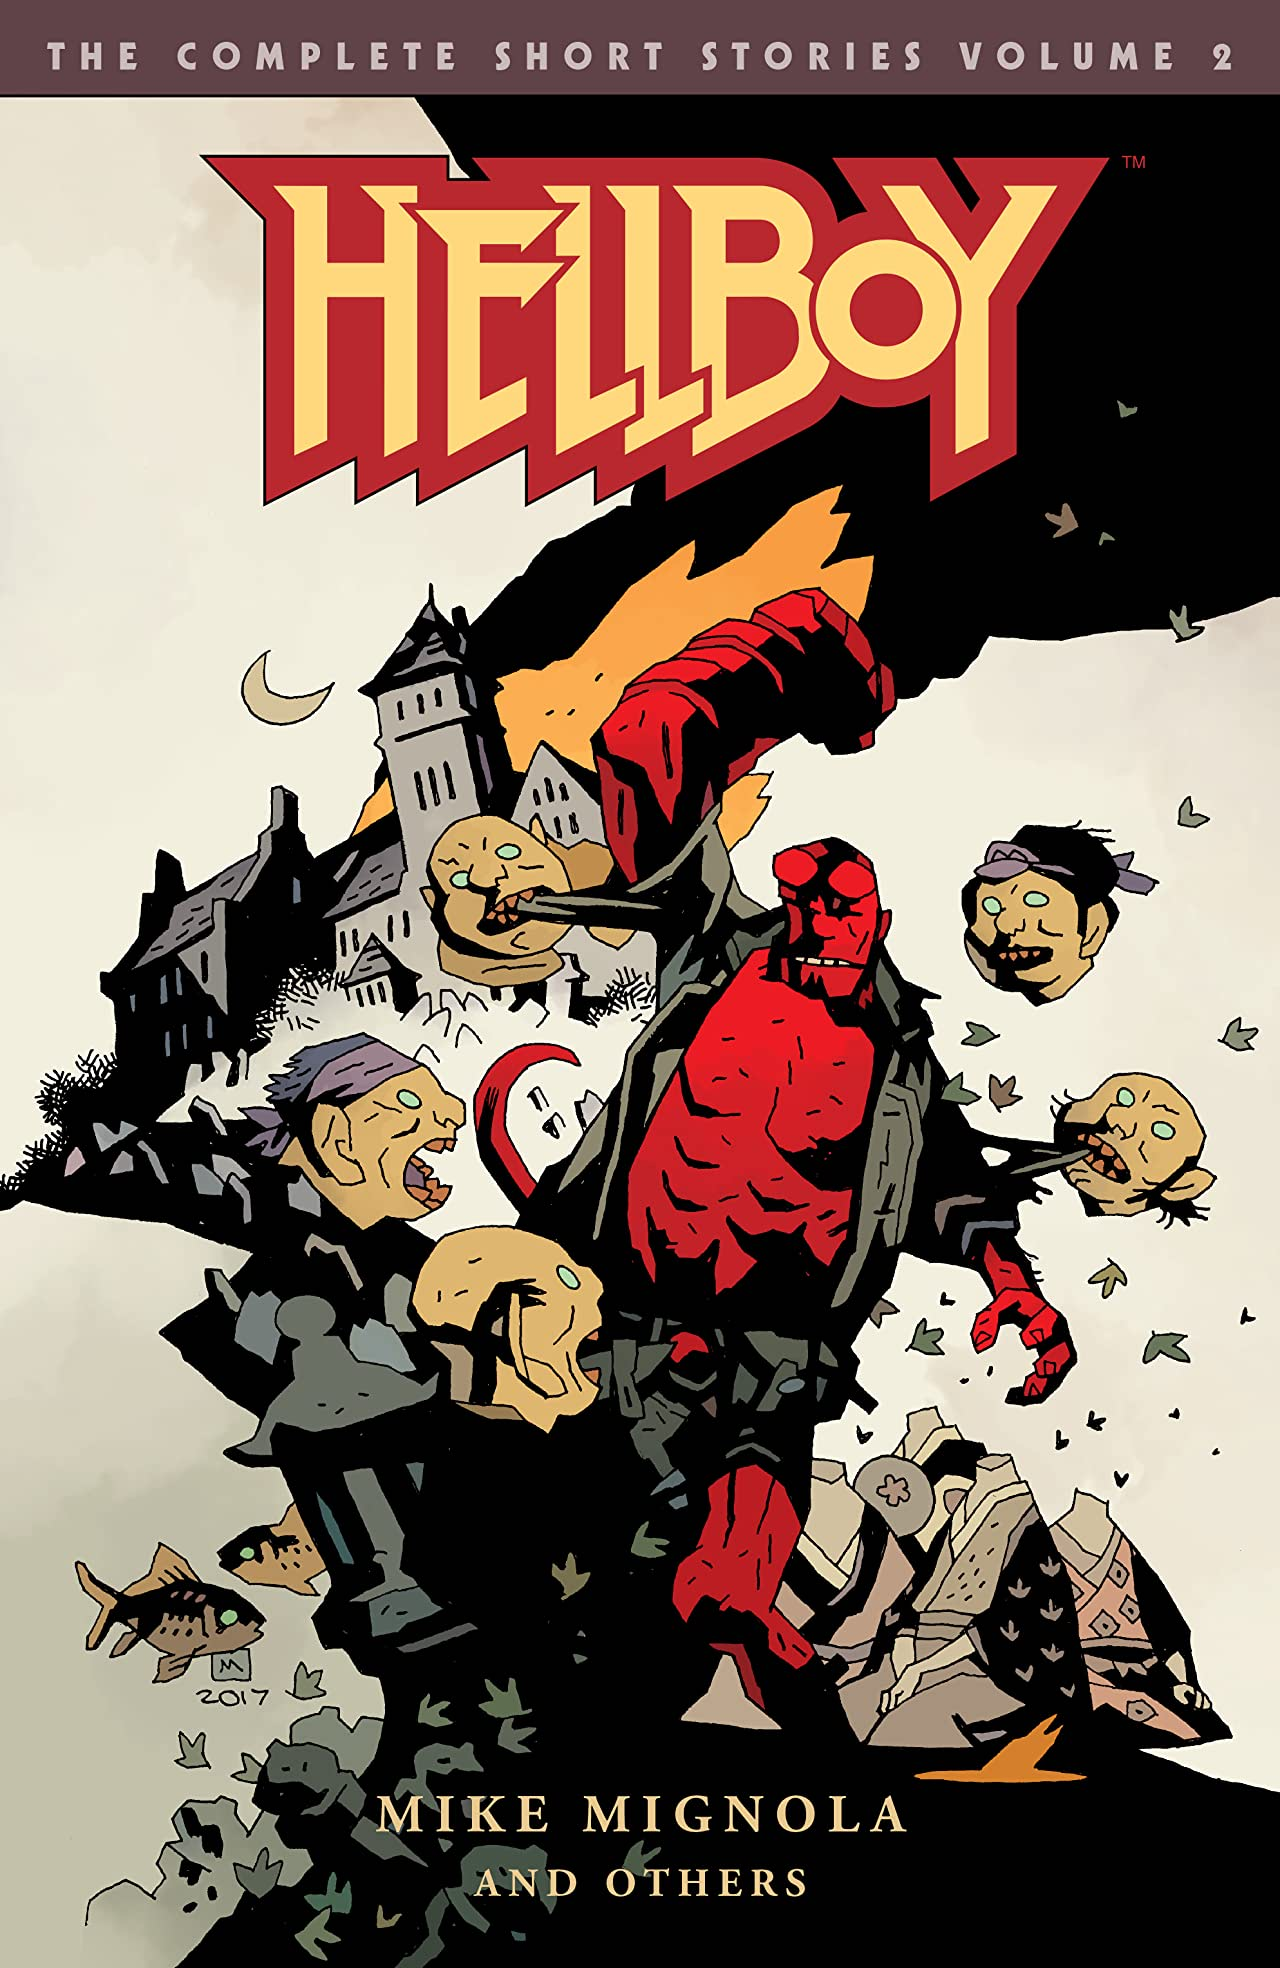 Hellboy: The Complete Short Stories Vol. 2